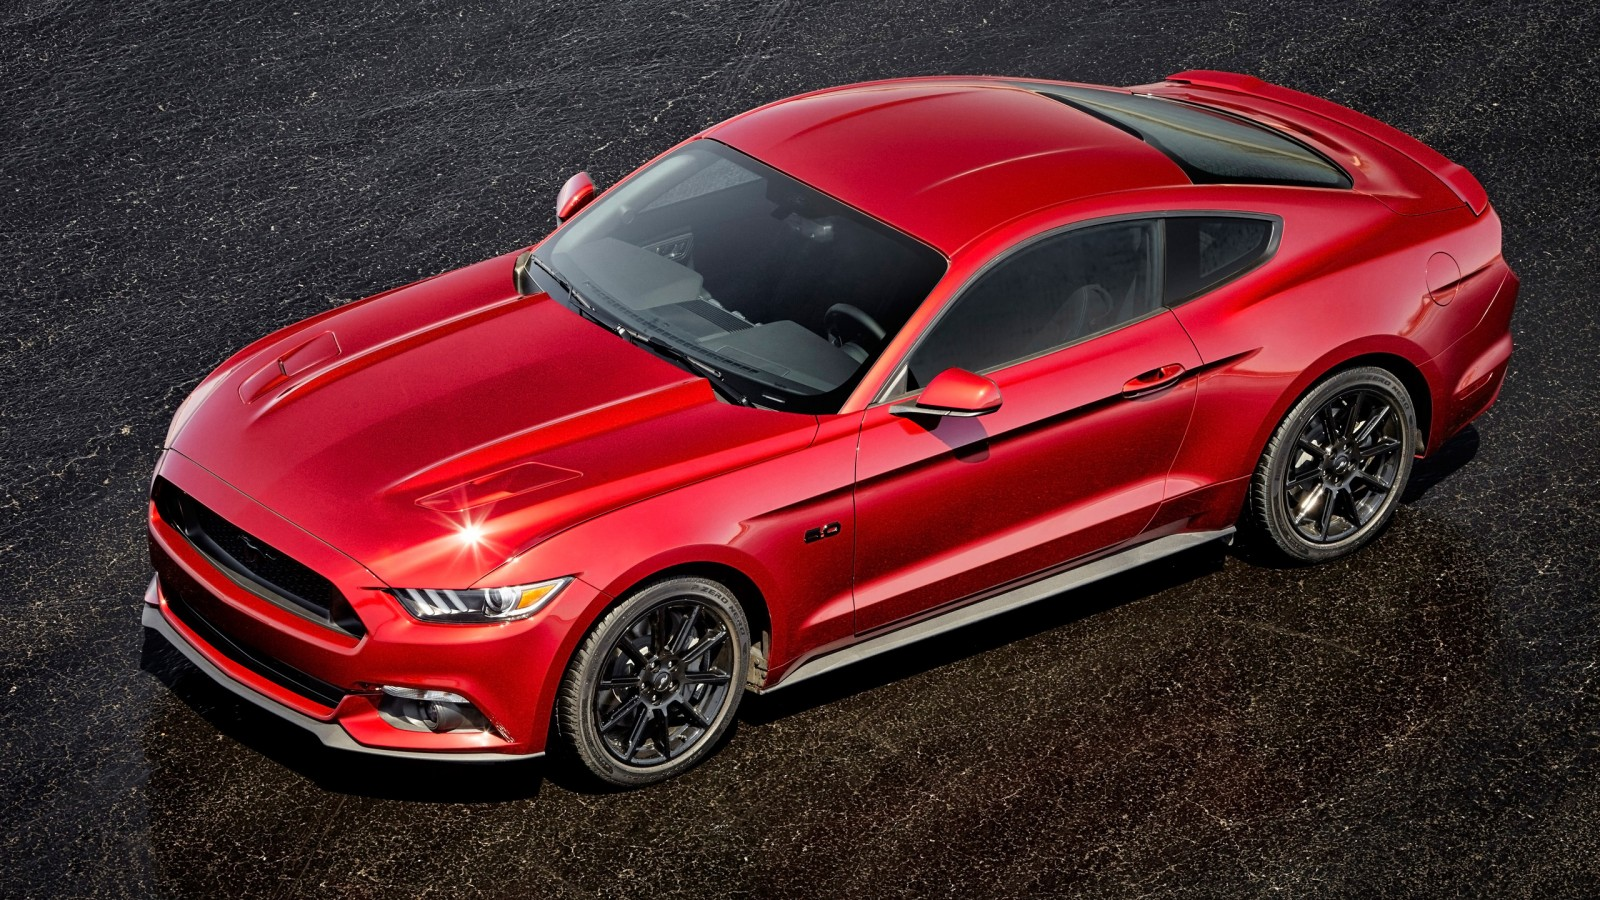 2016 ford mustang gt wallpaper hd car wallpapers id 5336 - Ford mustang wallpaper download ...